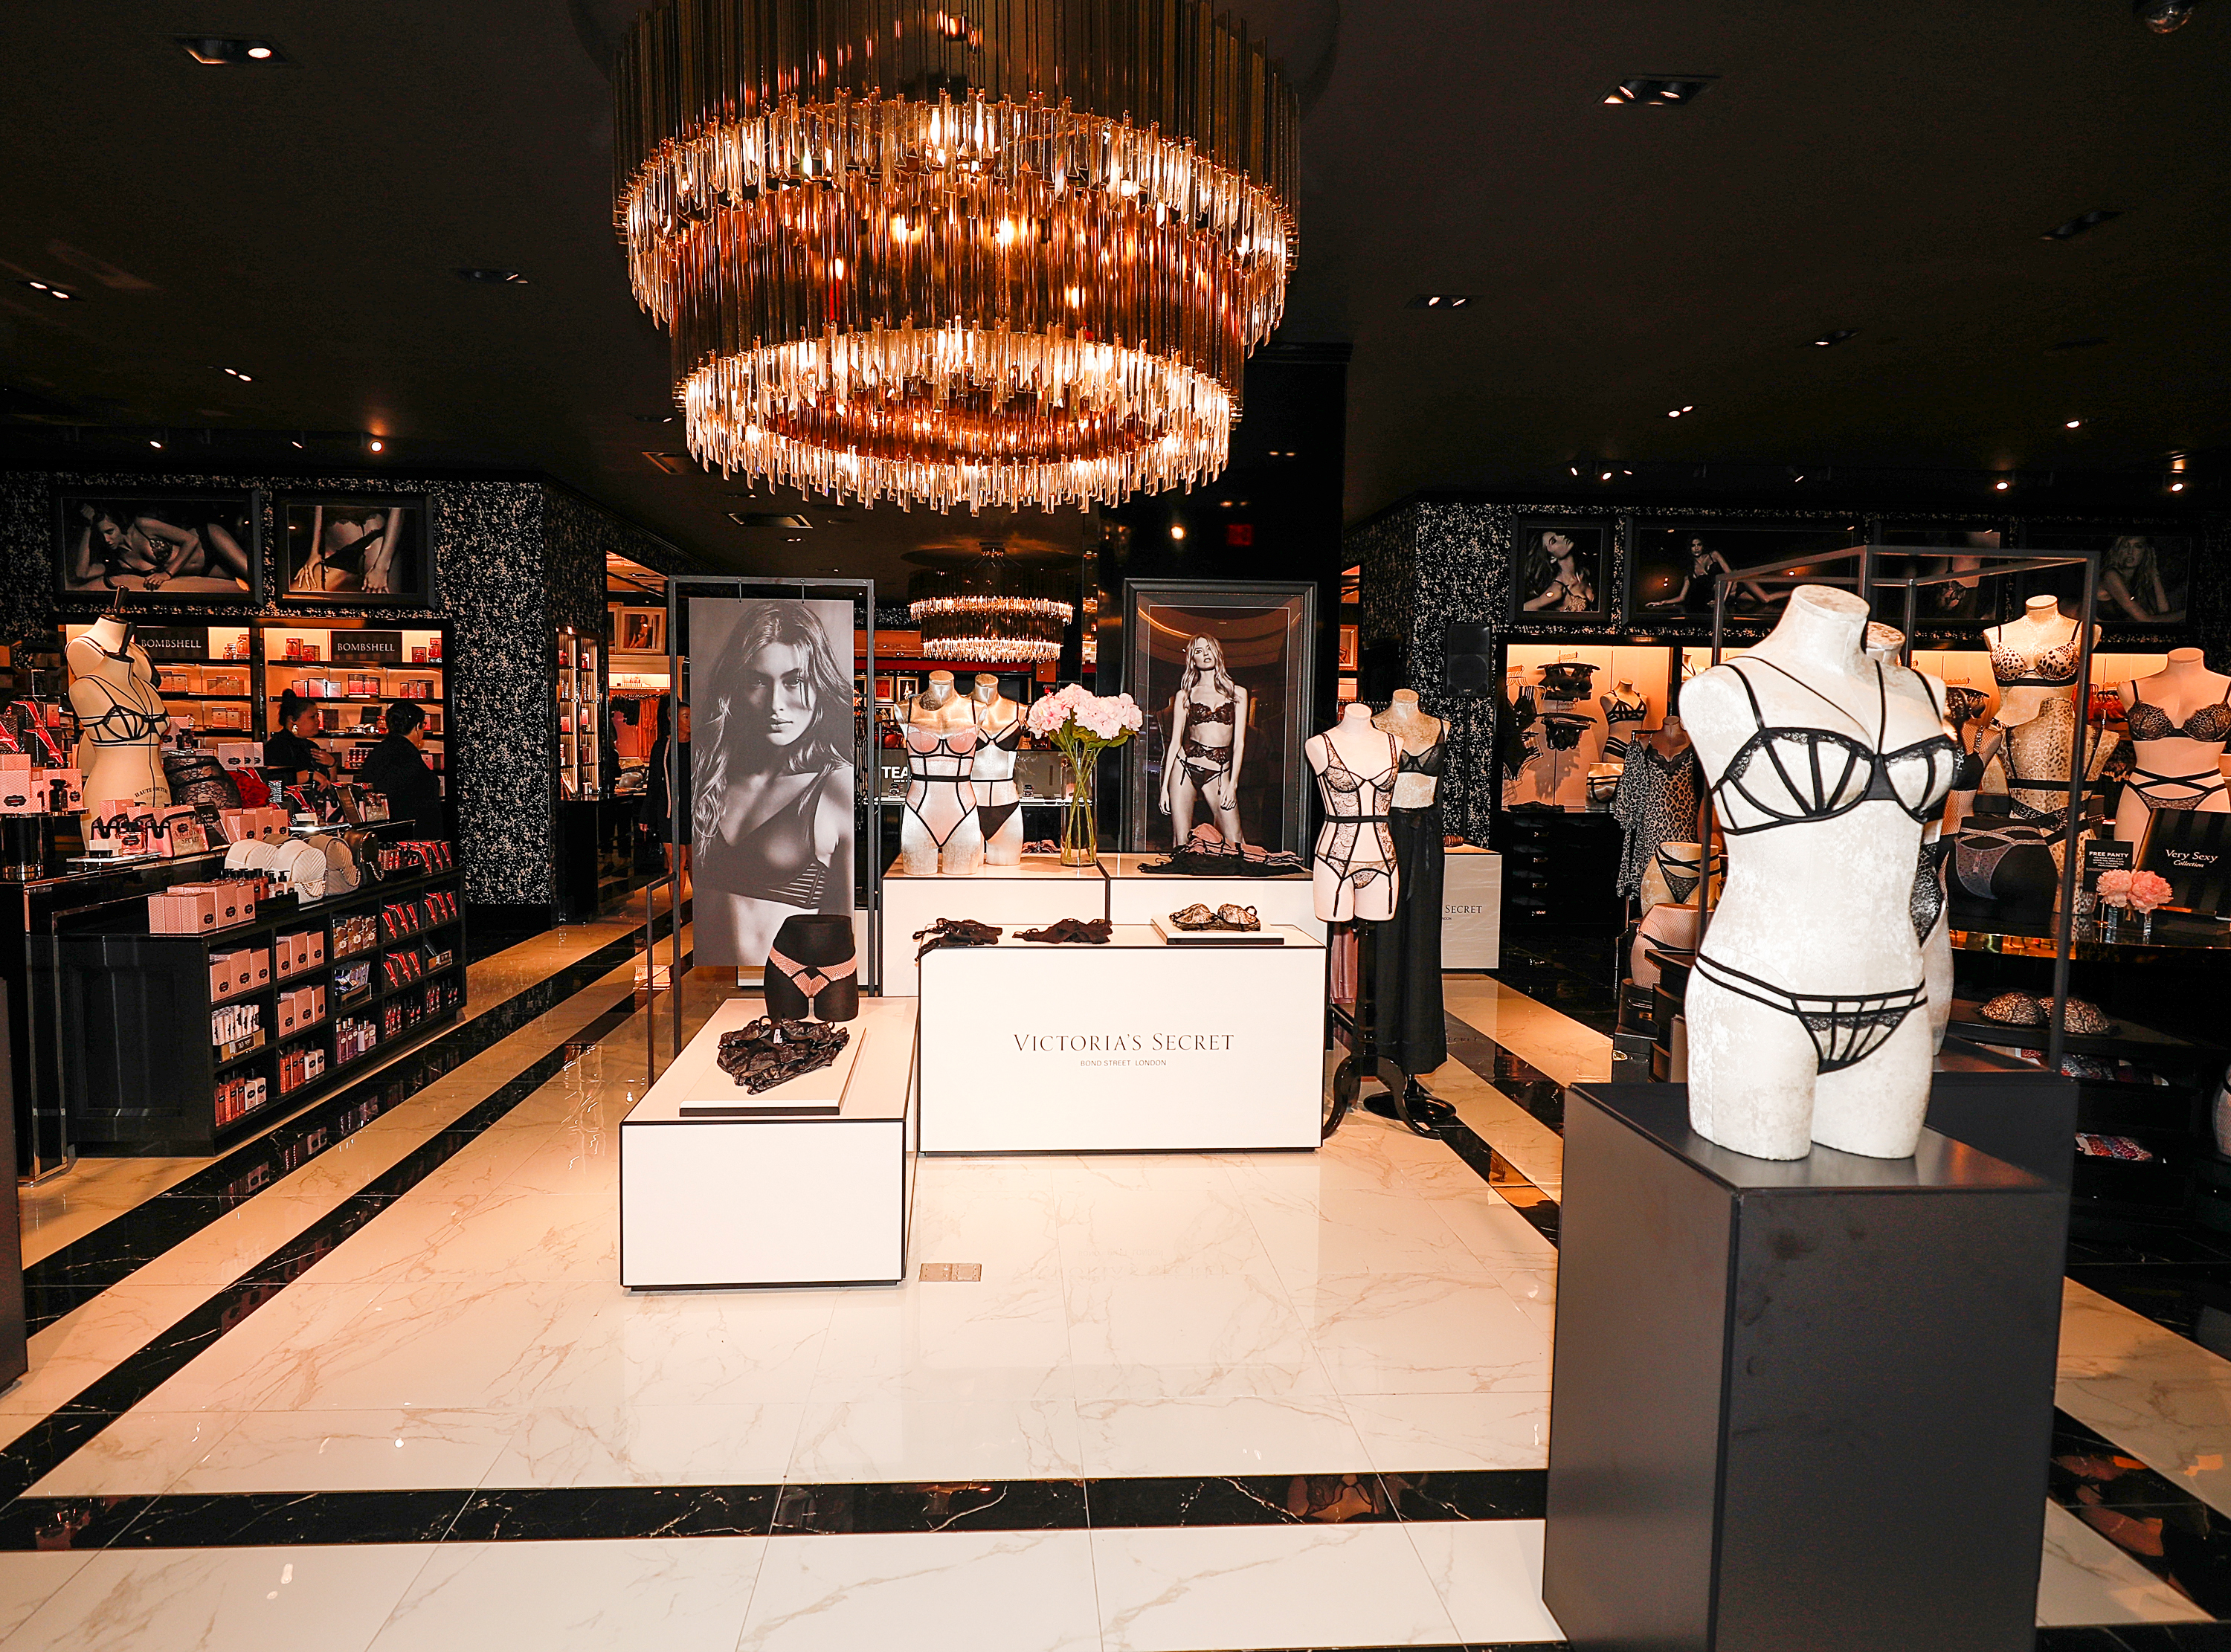 Victoria's Secret's 'sexy for all' strategy boosts sales and shares